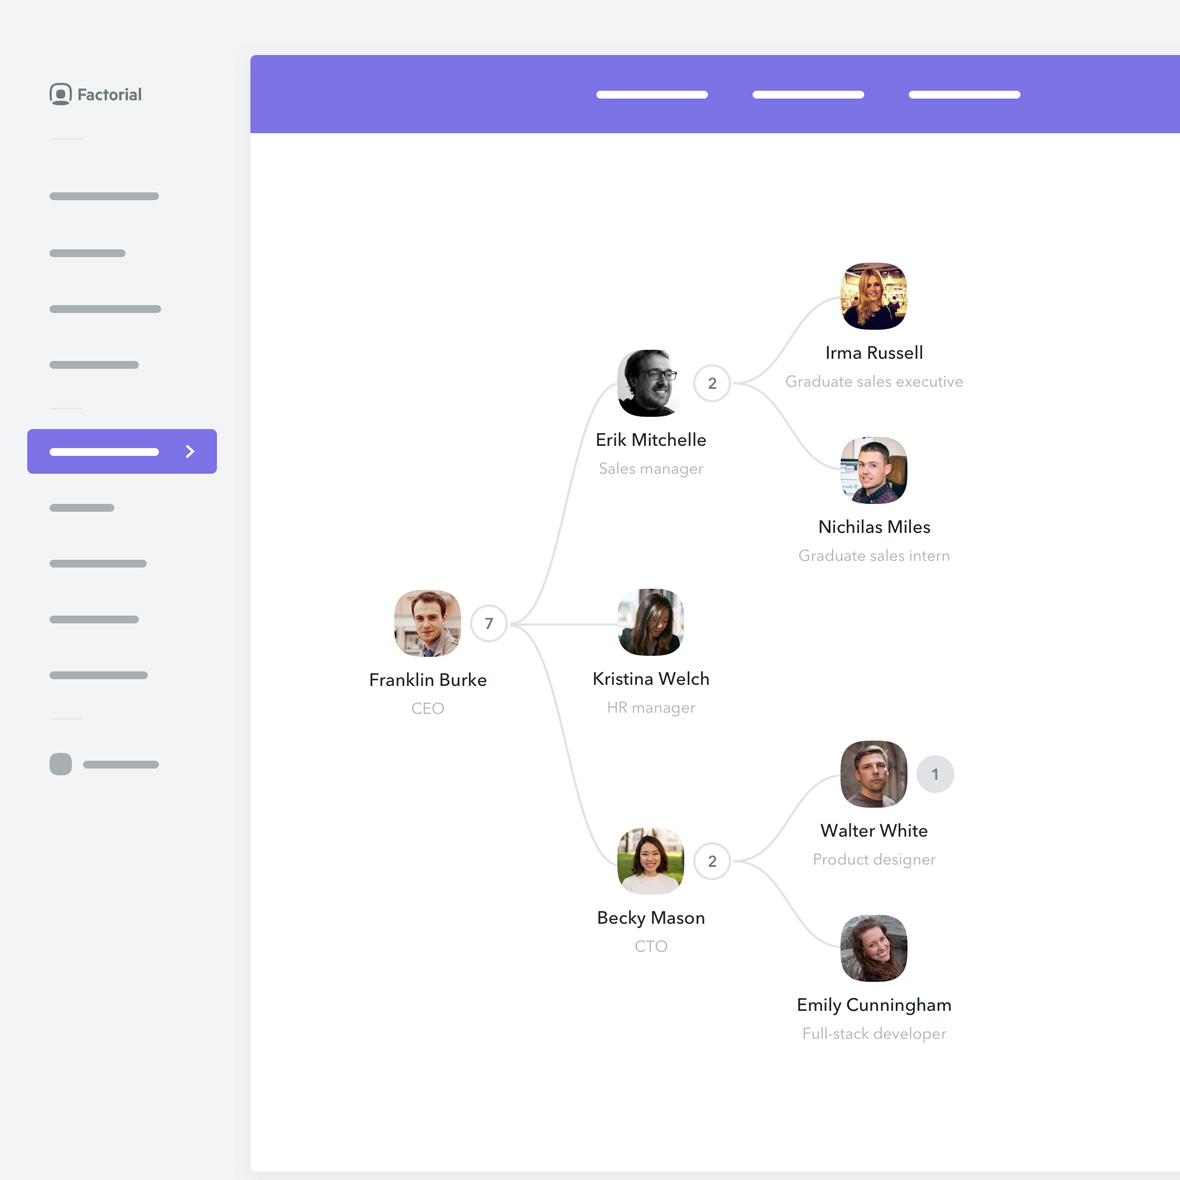 The organizational chart generator collects team data and displays an accurate org chart for the company